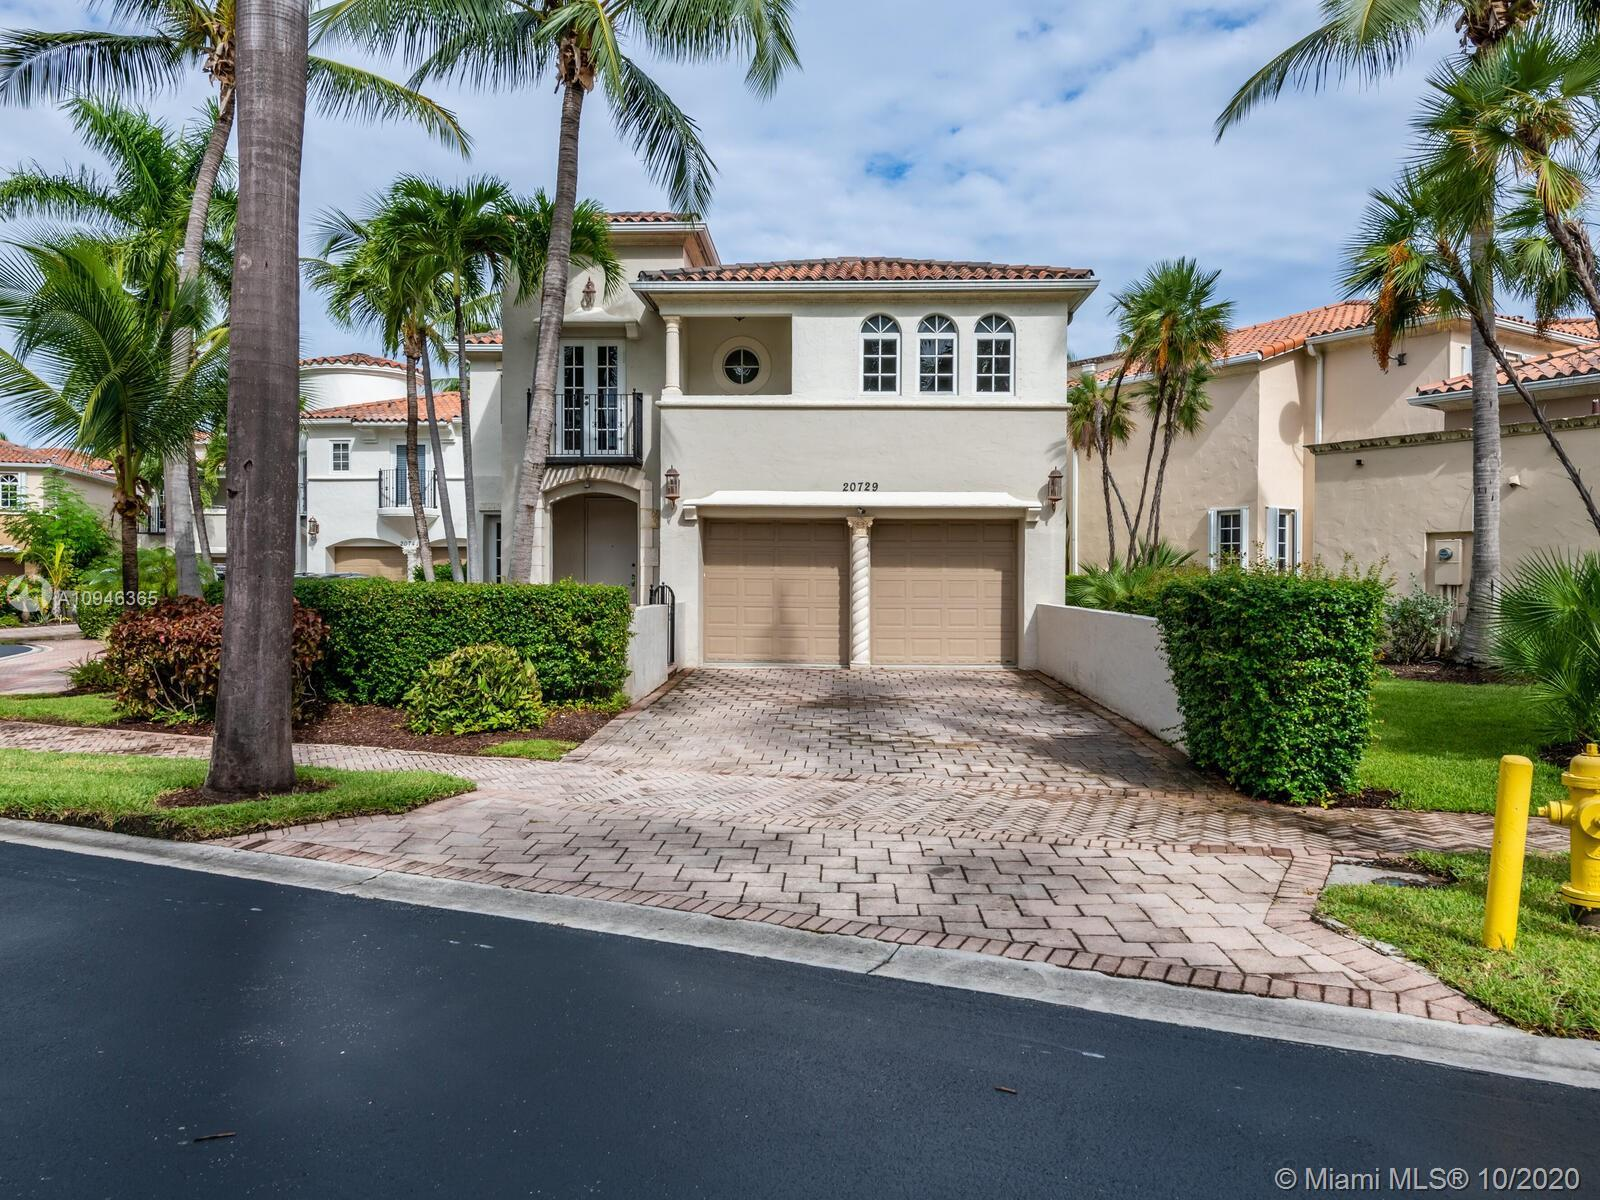 A RARE OPPORTUNITY IN AVENTURA LAKES!!! STUNNING RENOVATED TRUE 4 BEDROOM, 4.5 BATH ON RECORD (3,250